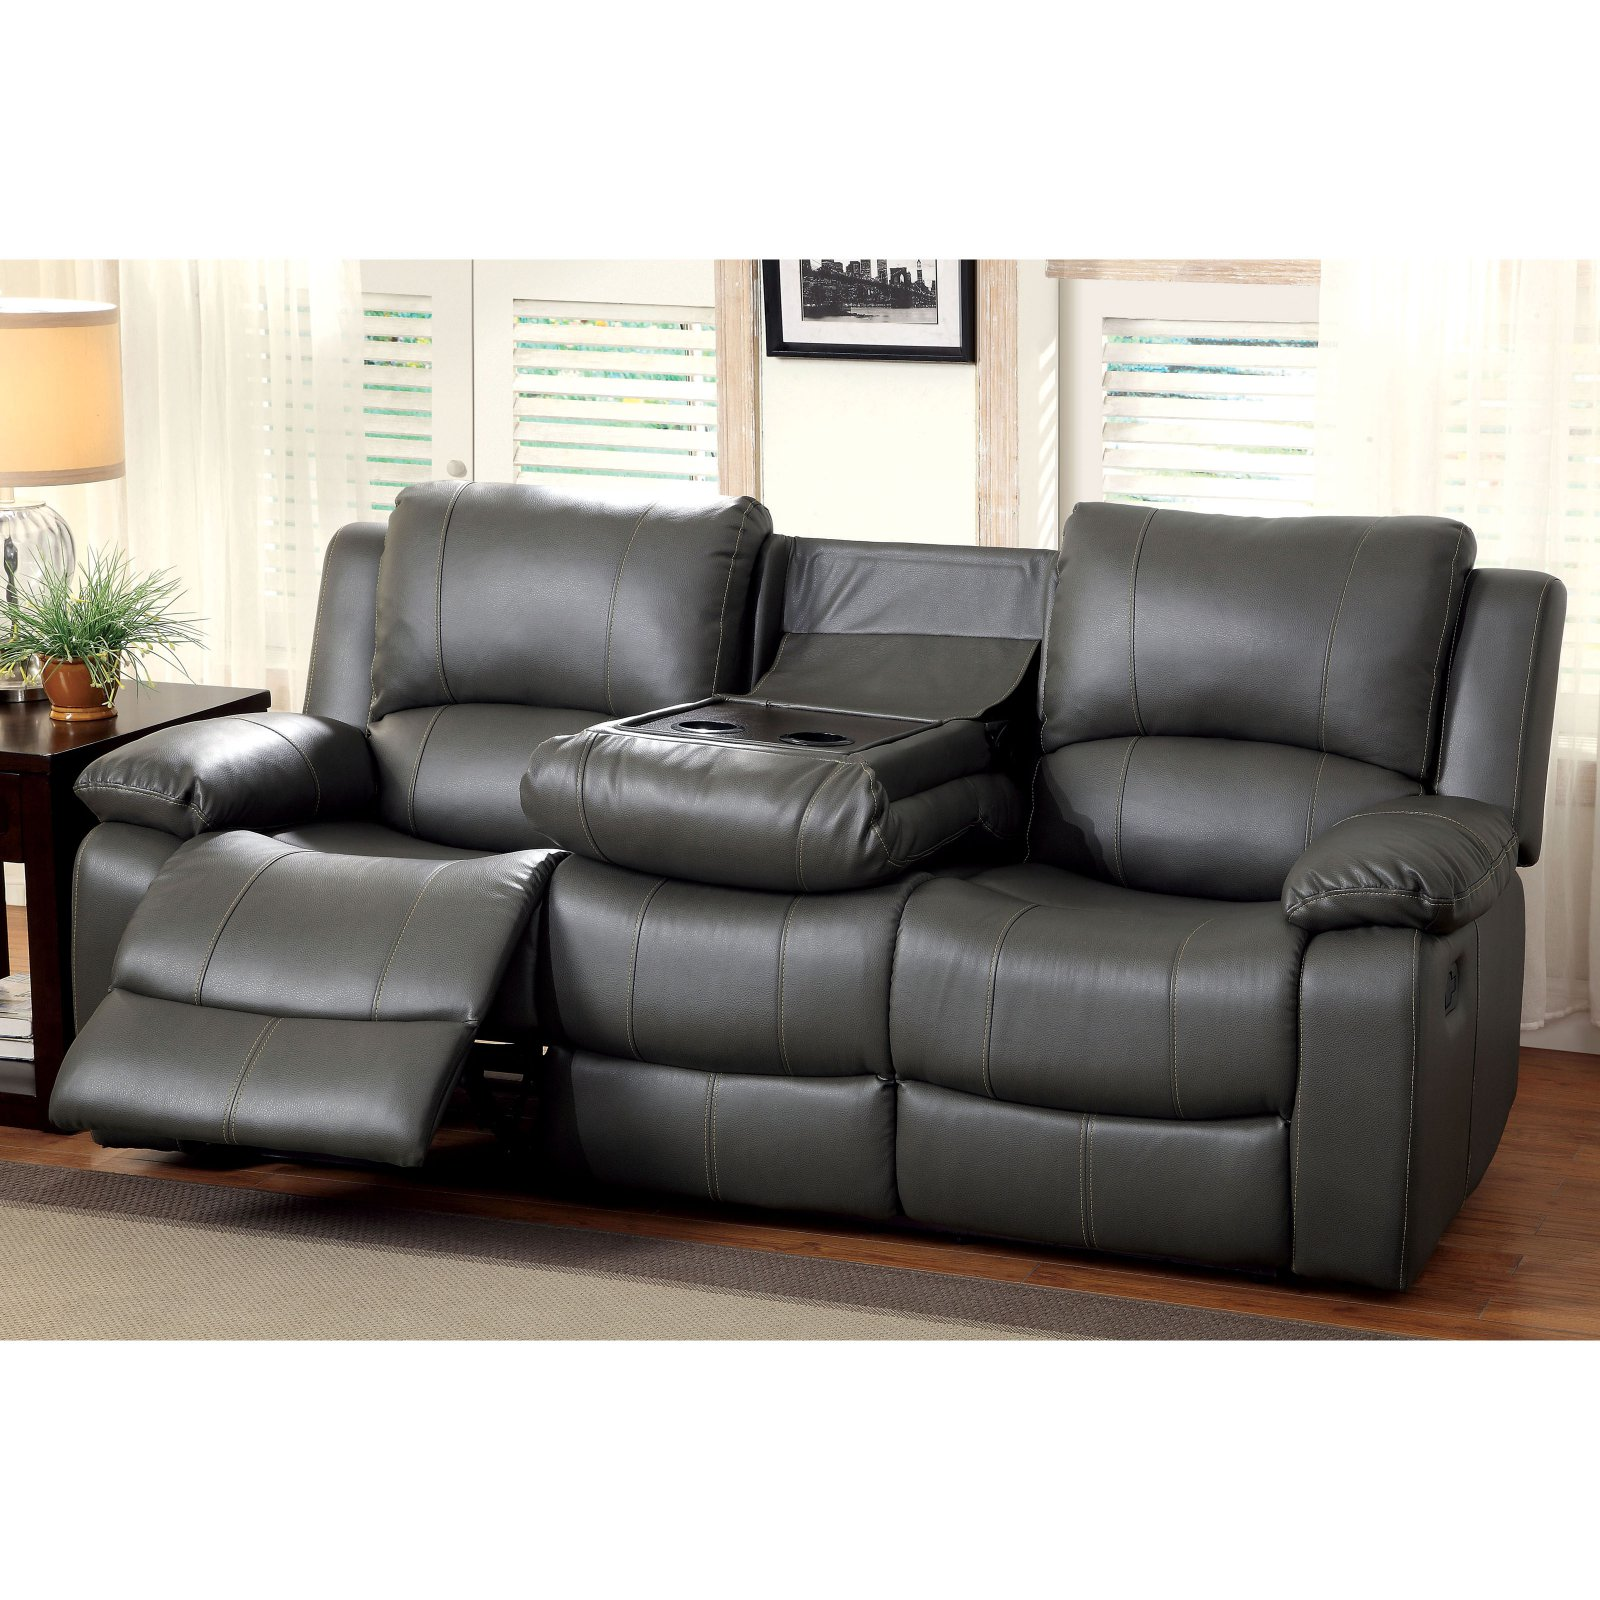 Furniture of America Rathbone Recliner Sofa with Cup Holders  sc 1 st  Walmart & Furniture of America Rathbone Recliner Sofa with Cup Holders ... islam-shia.org